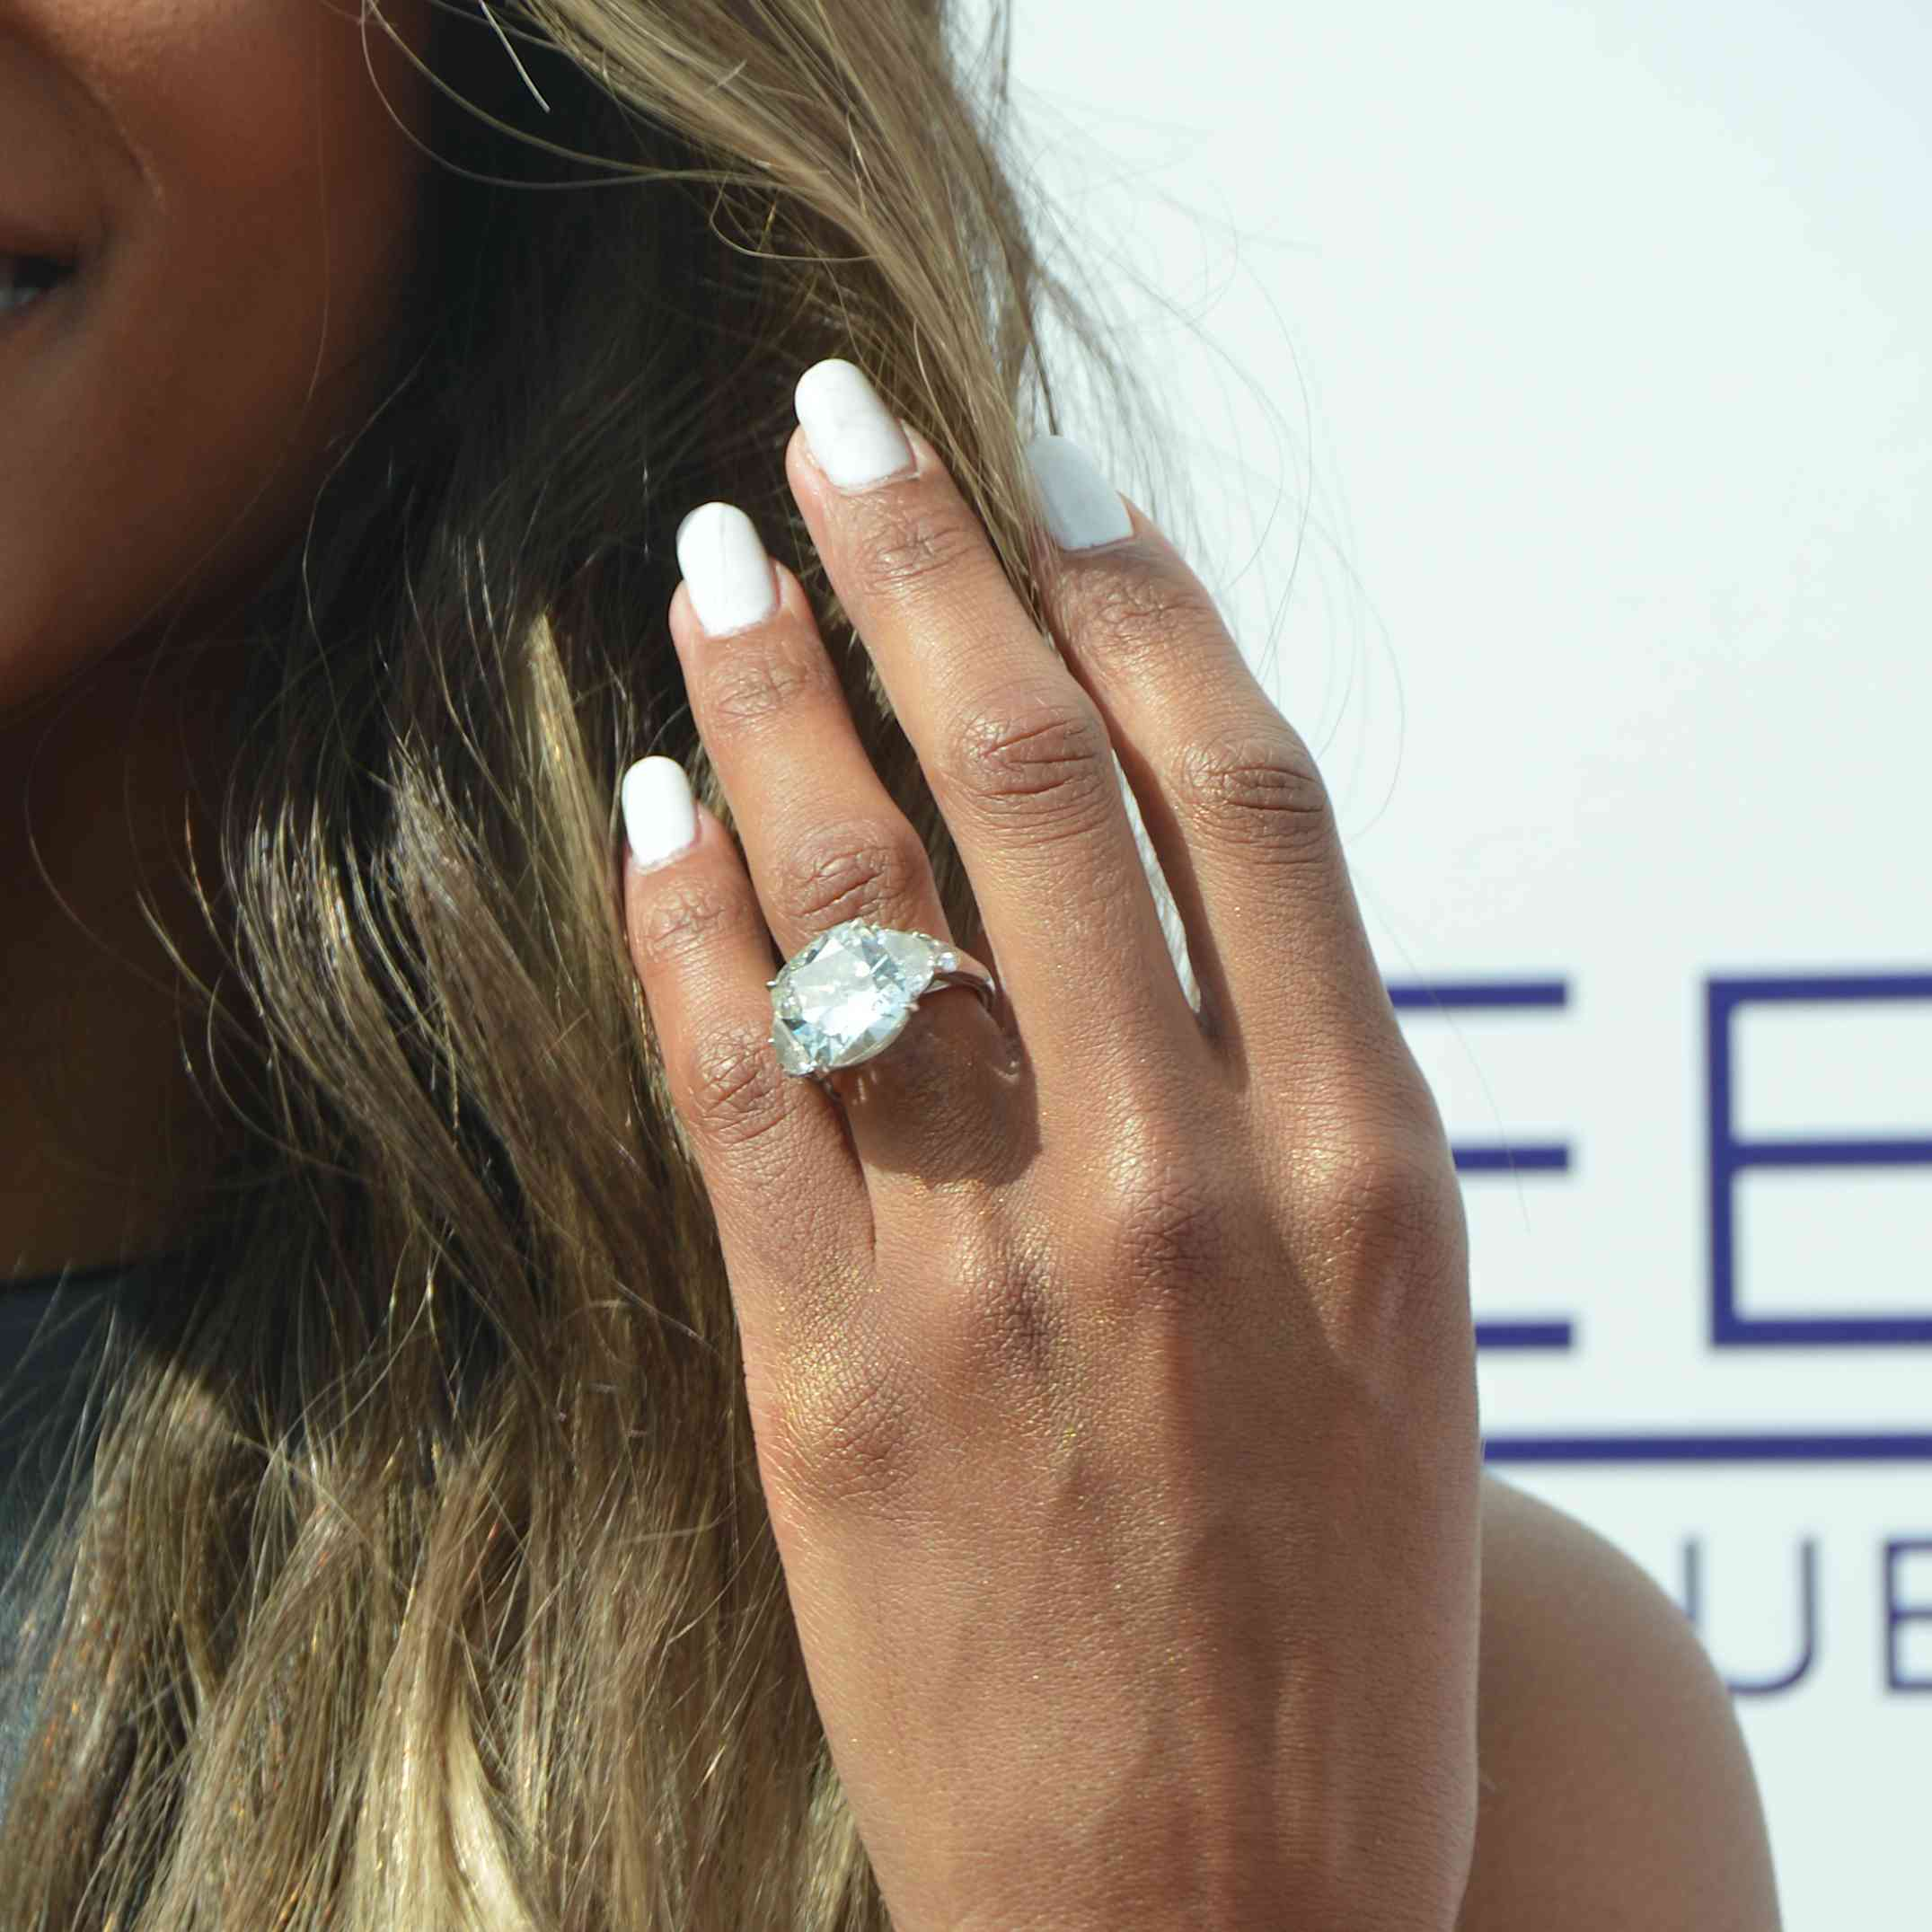 LAS VEGAS, NV - MARCH 19: Recording artist Ciara, ring detail, arrives at the season grand opening of the Marquee Dayclub at The Cosmopolitan of Las Vegas on March 19, 2016 in Las Vegas, Nevada. (Photo by Mindy Small/FilmMagic)